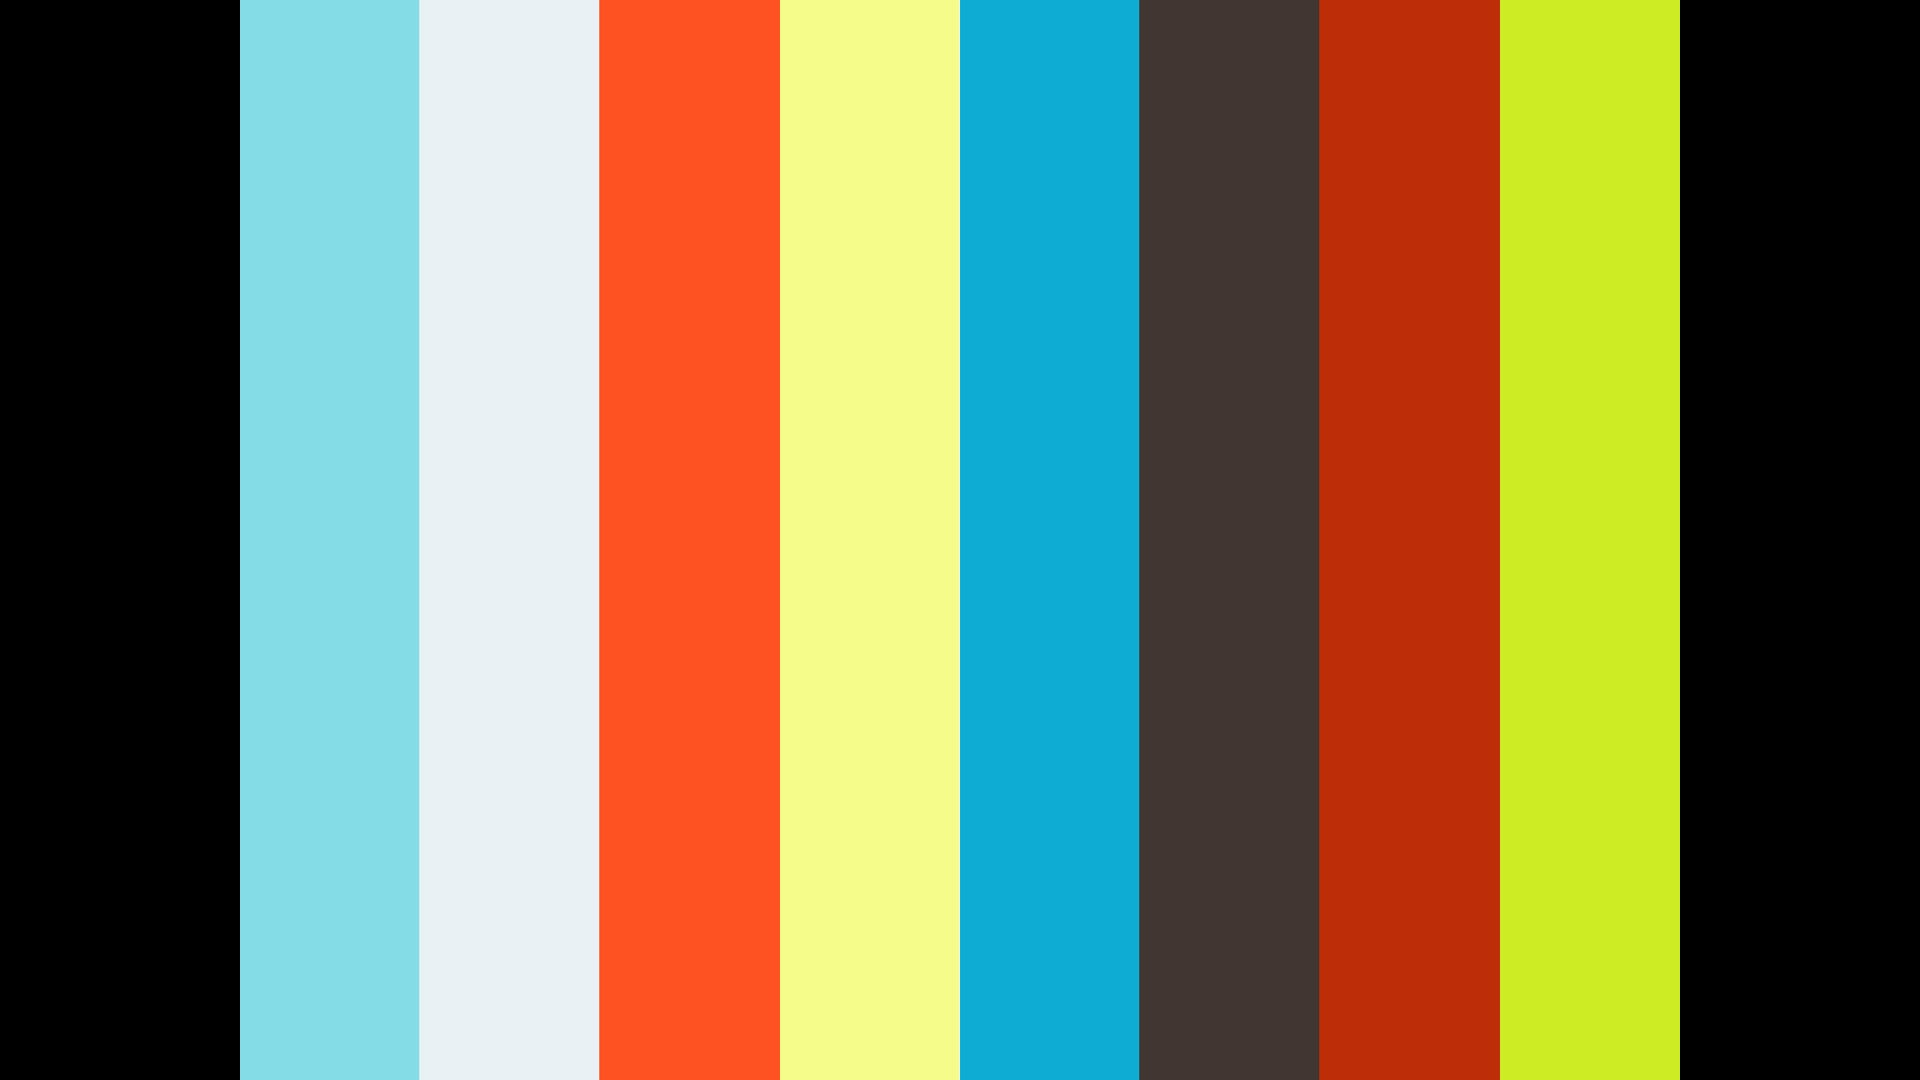 Reliv Business Opportunity Presentation